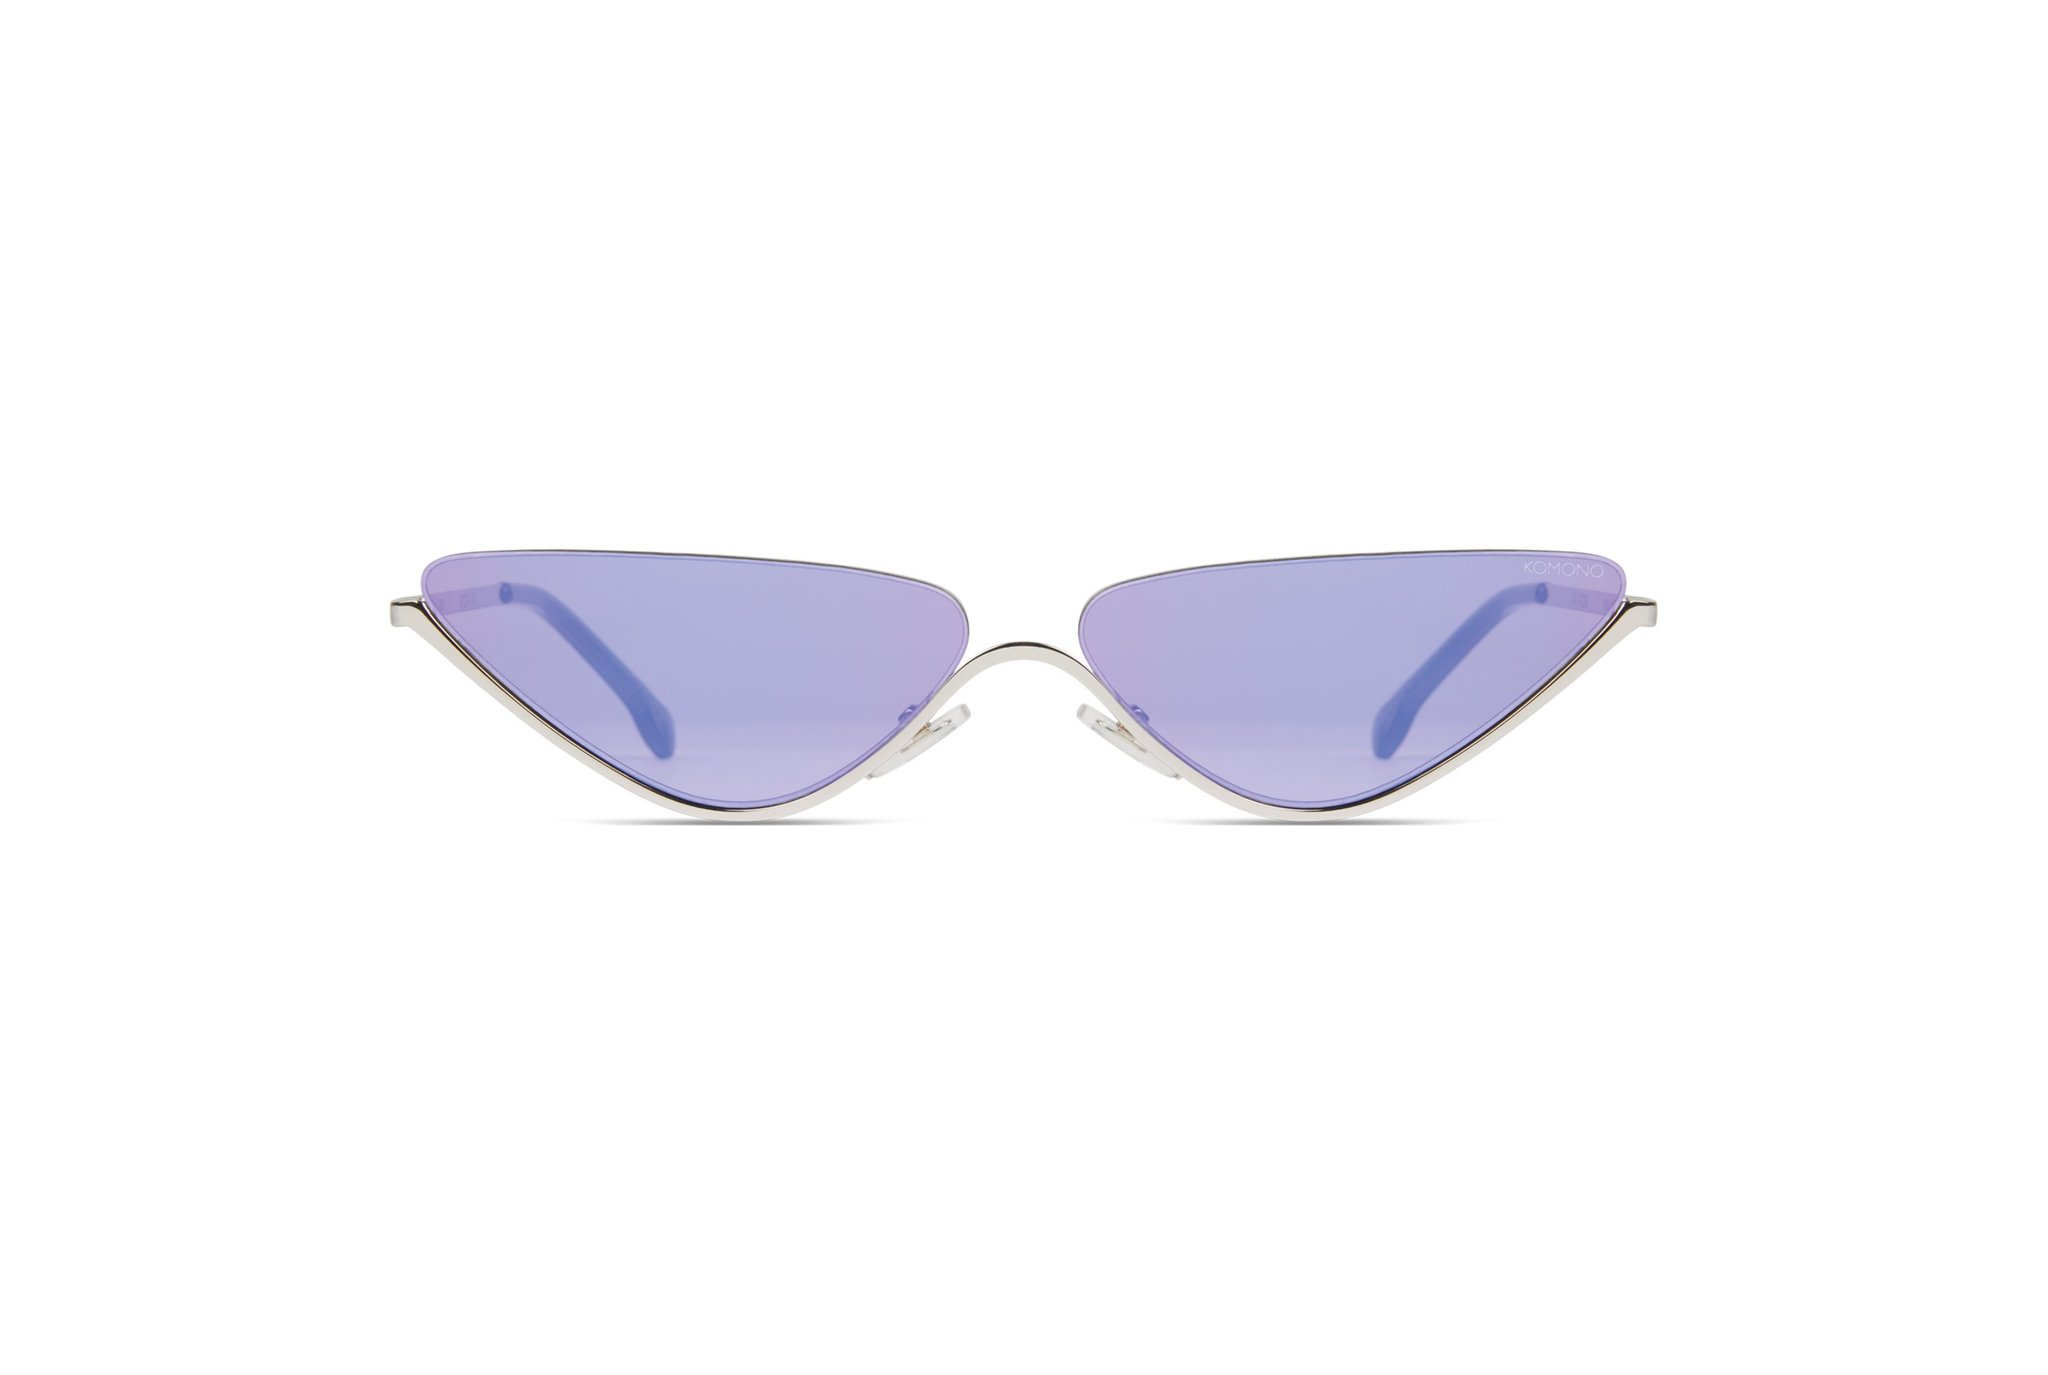 Komono - Ash Silver Amethyst / $89I've taken enough astrology quizzes to know that the cat eye suits my personality best, and these funky shades are a fun twist on the otherwise classic shape.